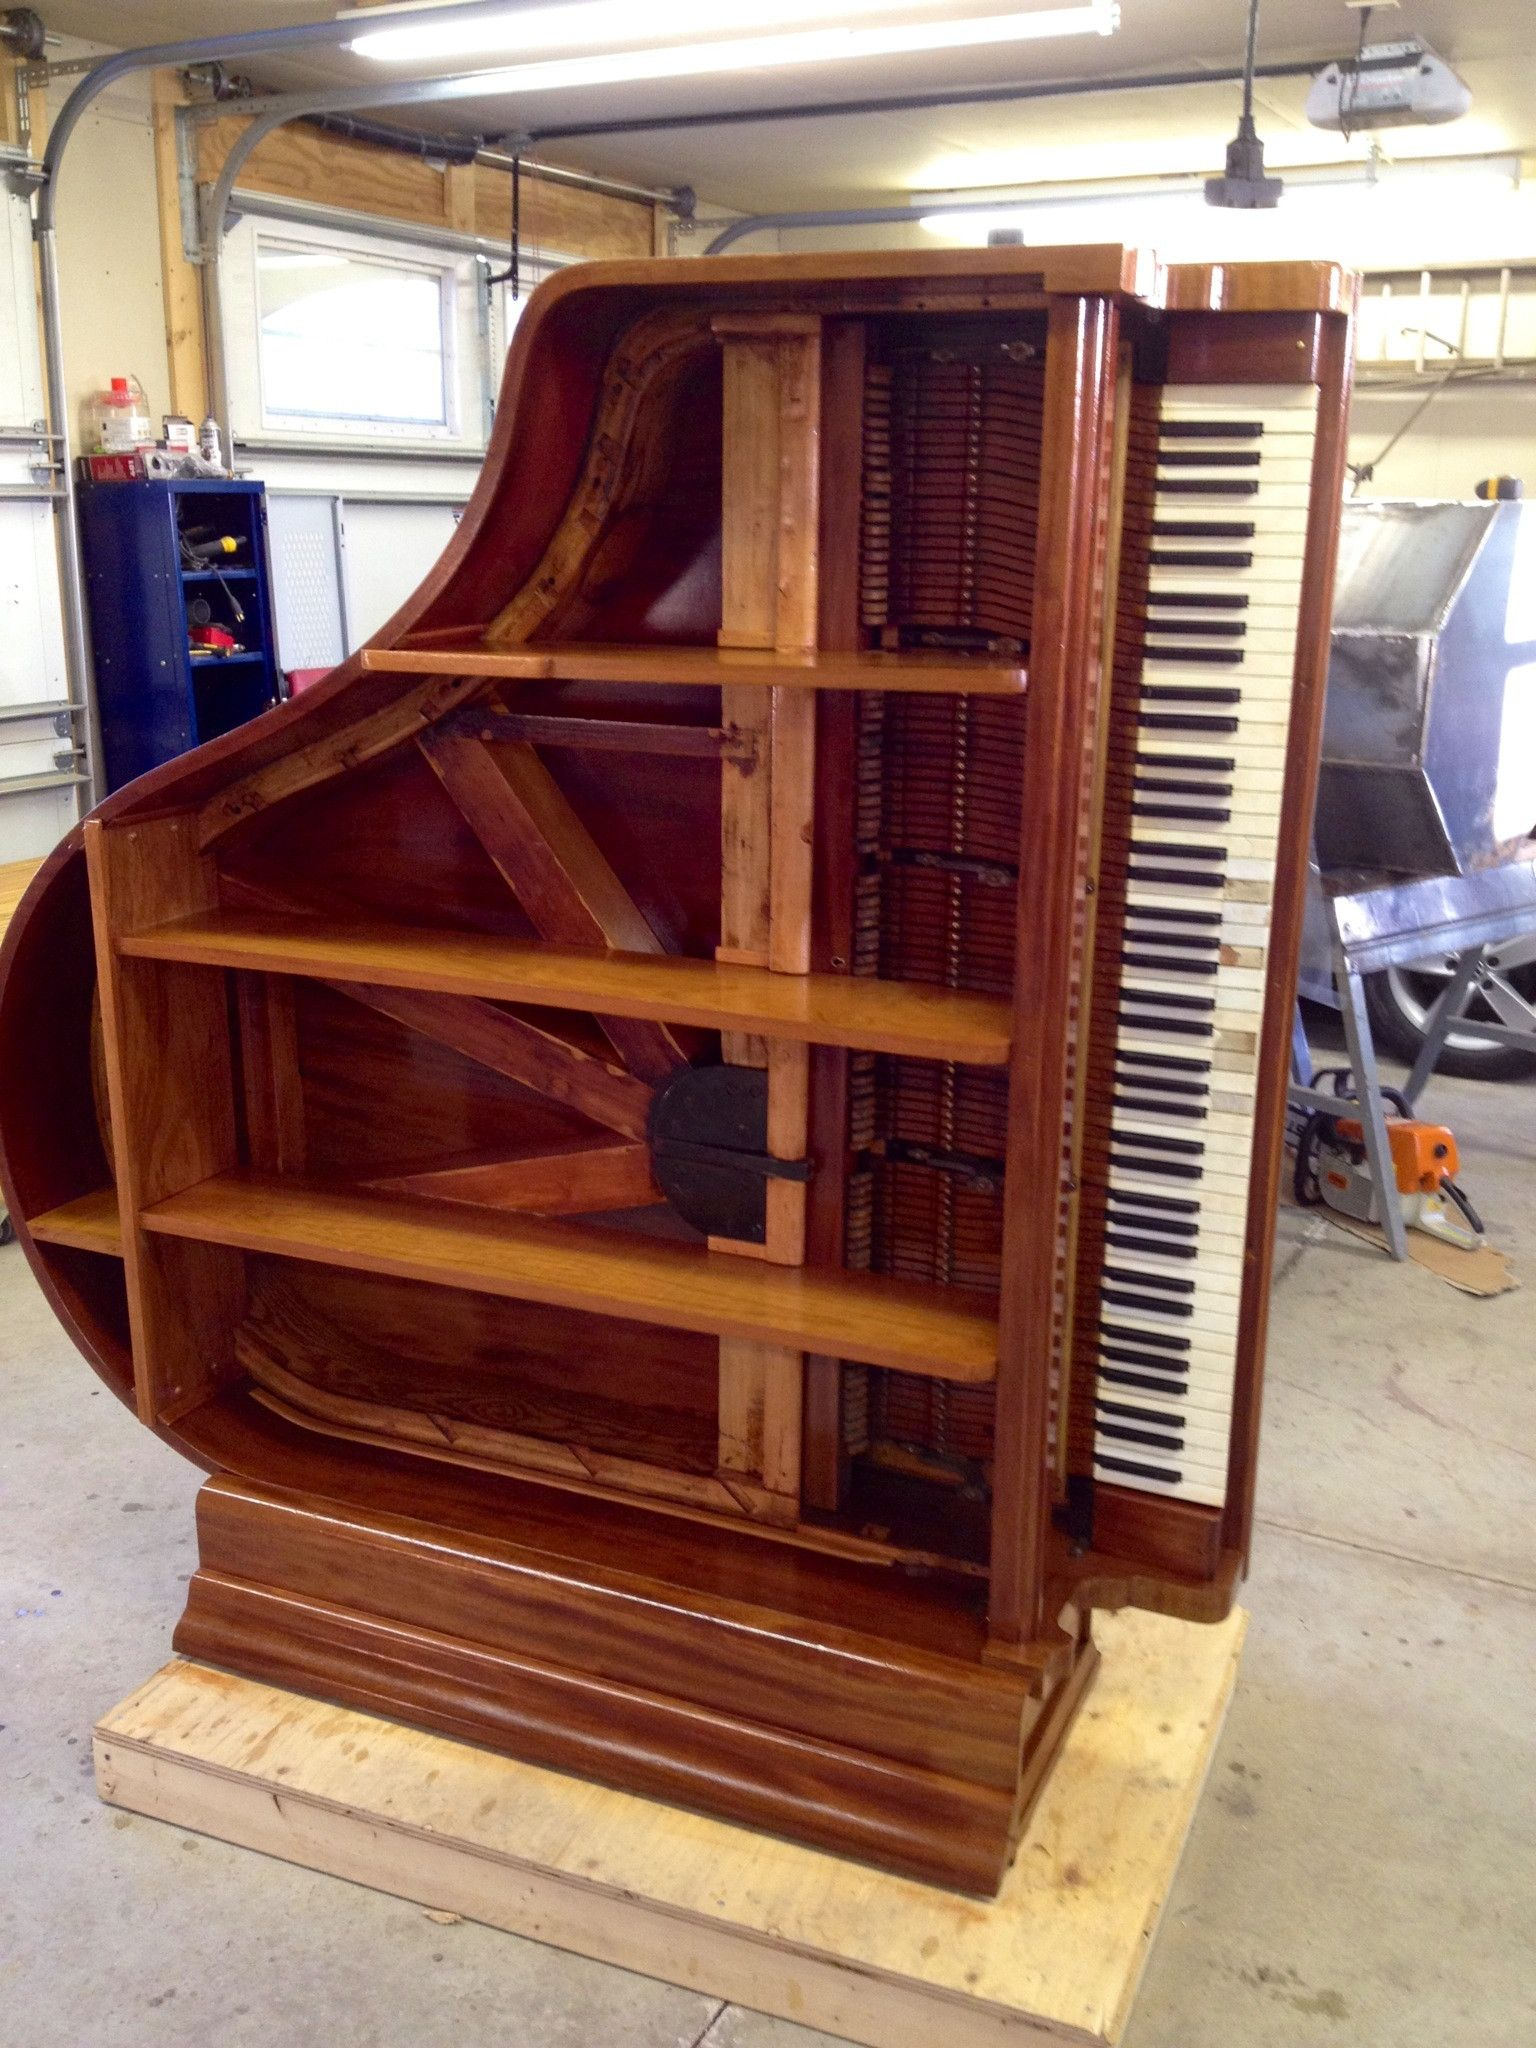 Made A Project Of Turning An Old Broken Piano Into A Nice Shelf How Do You Like It Old Pianos Piano Diy Decor Projects